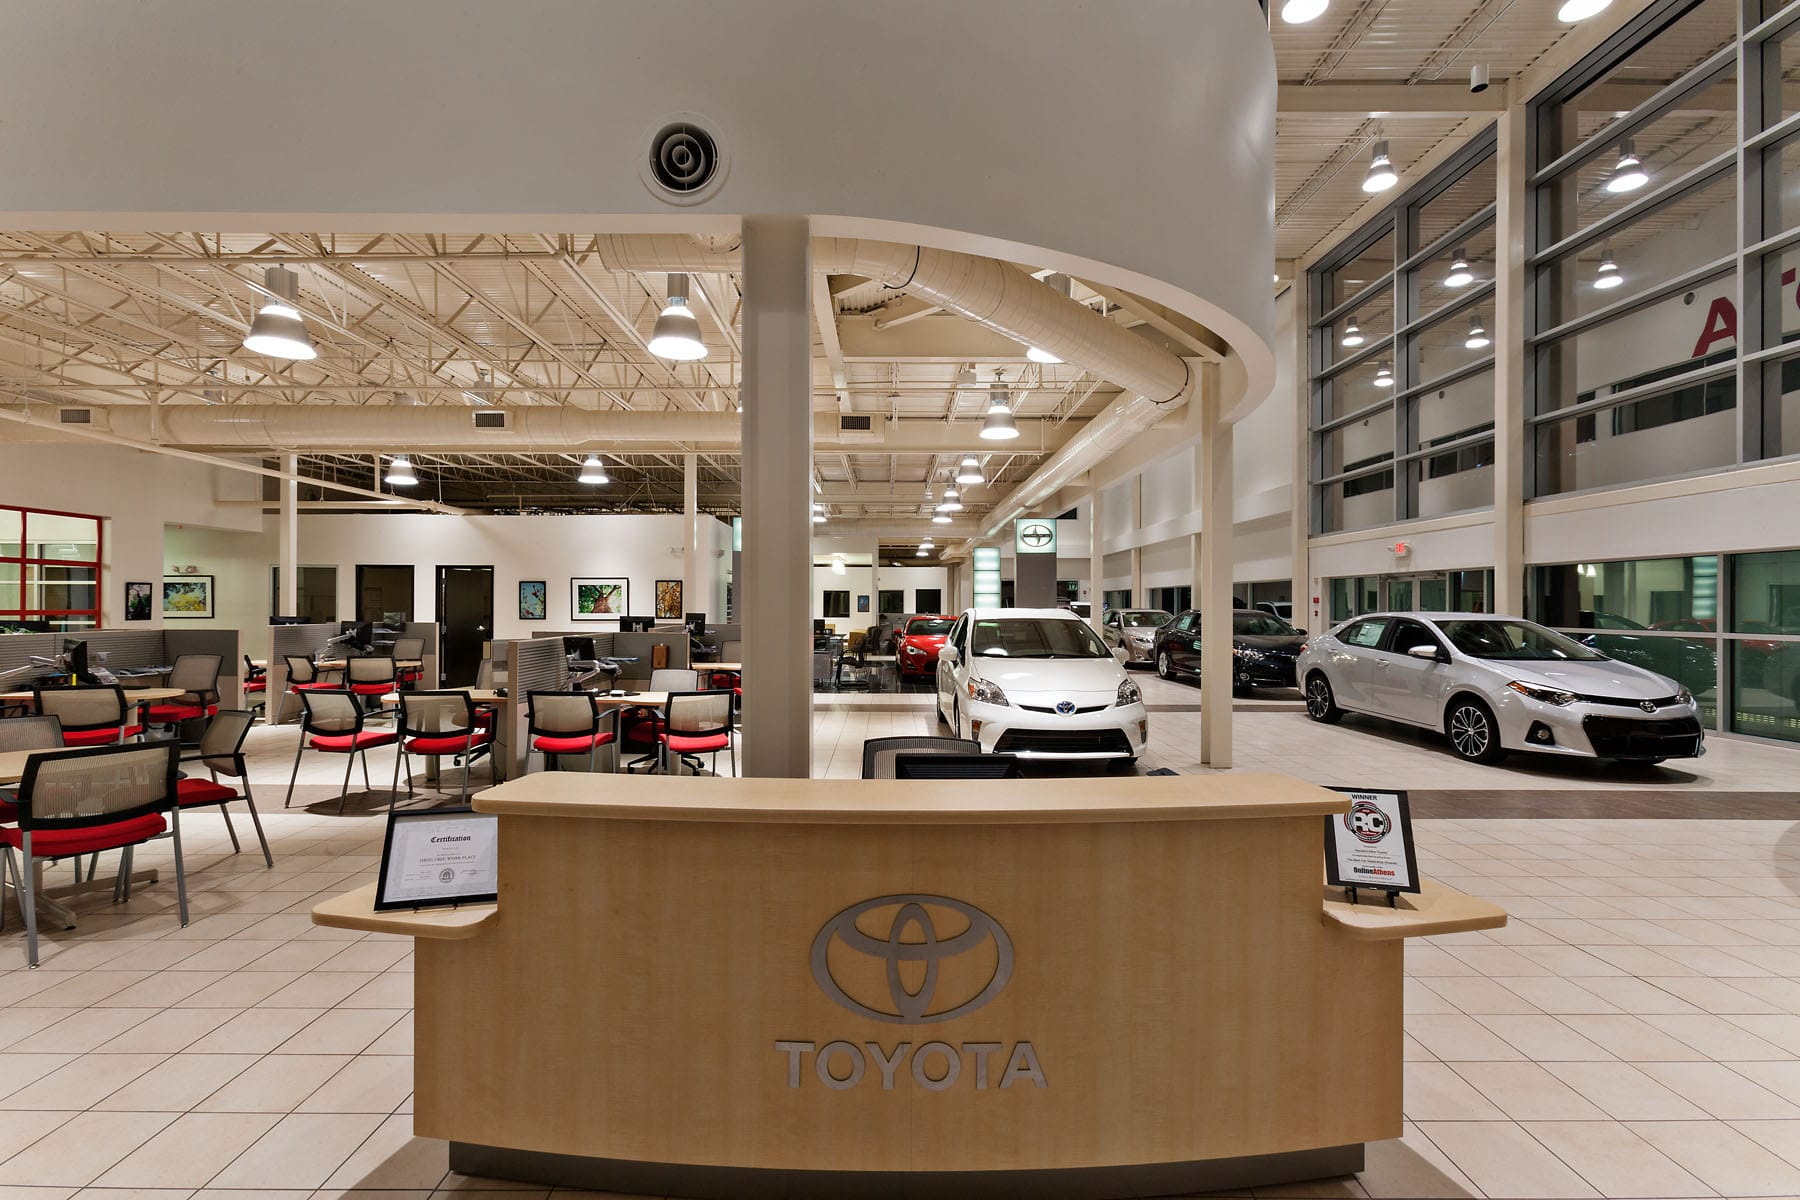 heyward allen toyota dco commercial floors. Black Bedroom Furniture Sets. Home Design Ideas